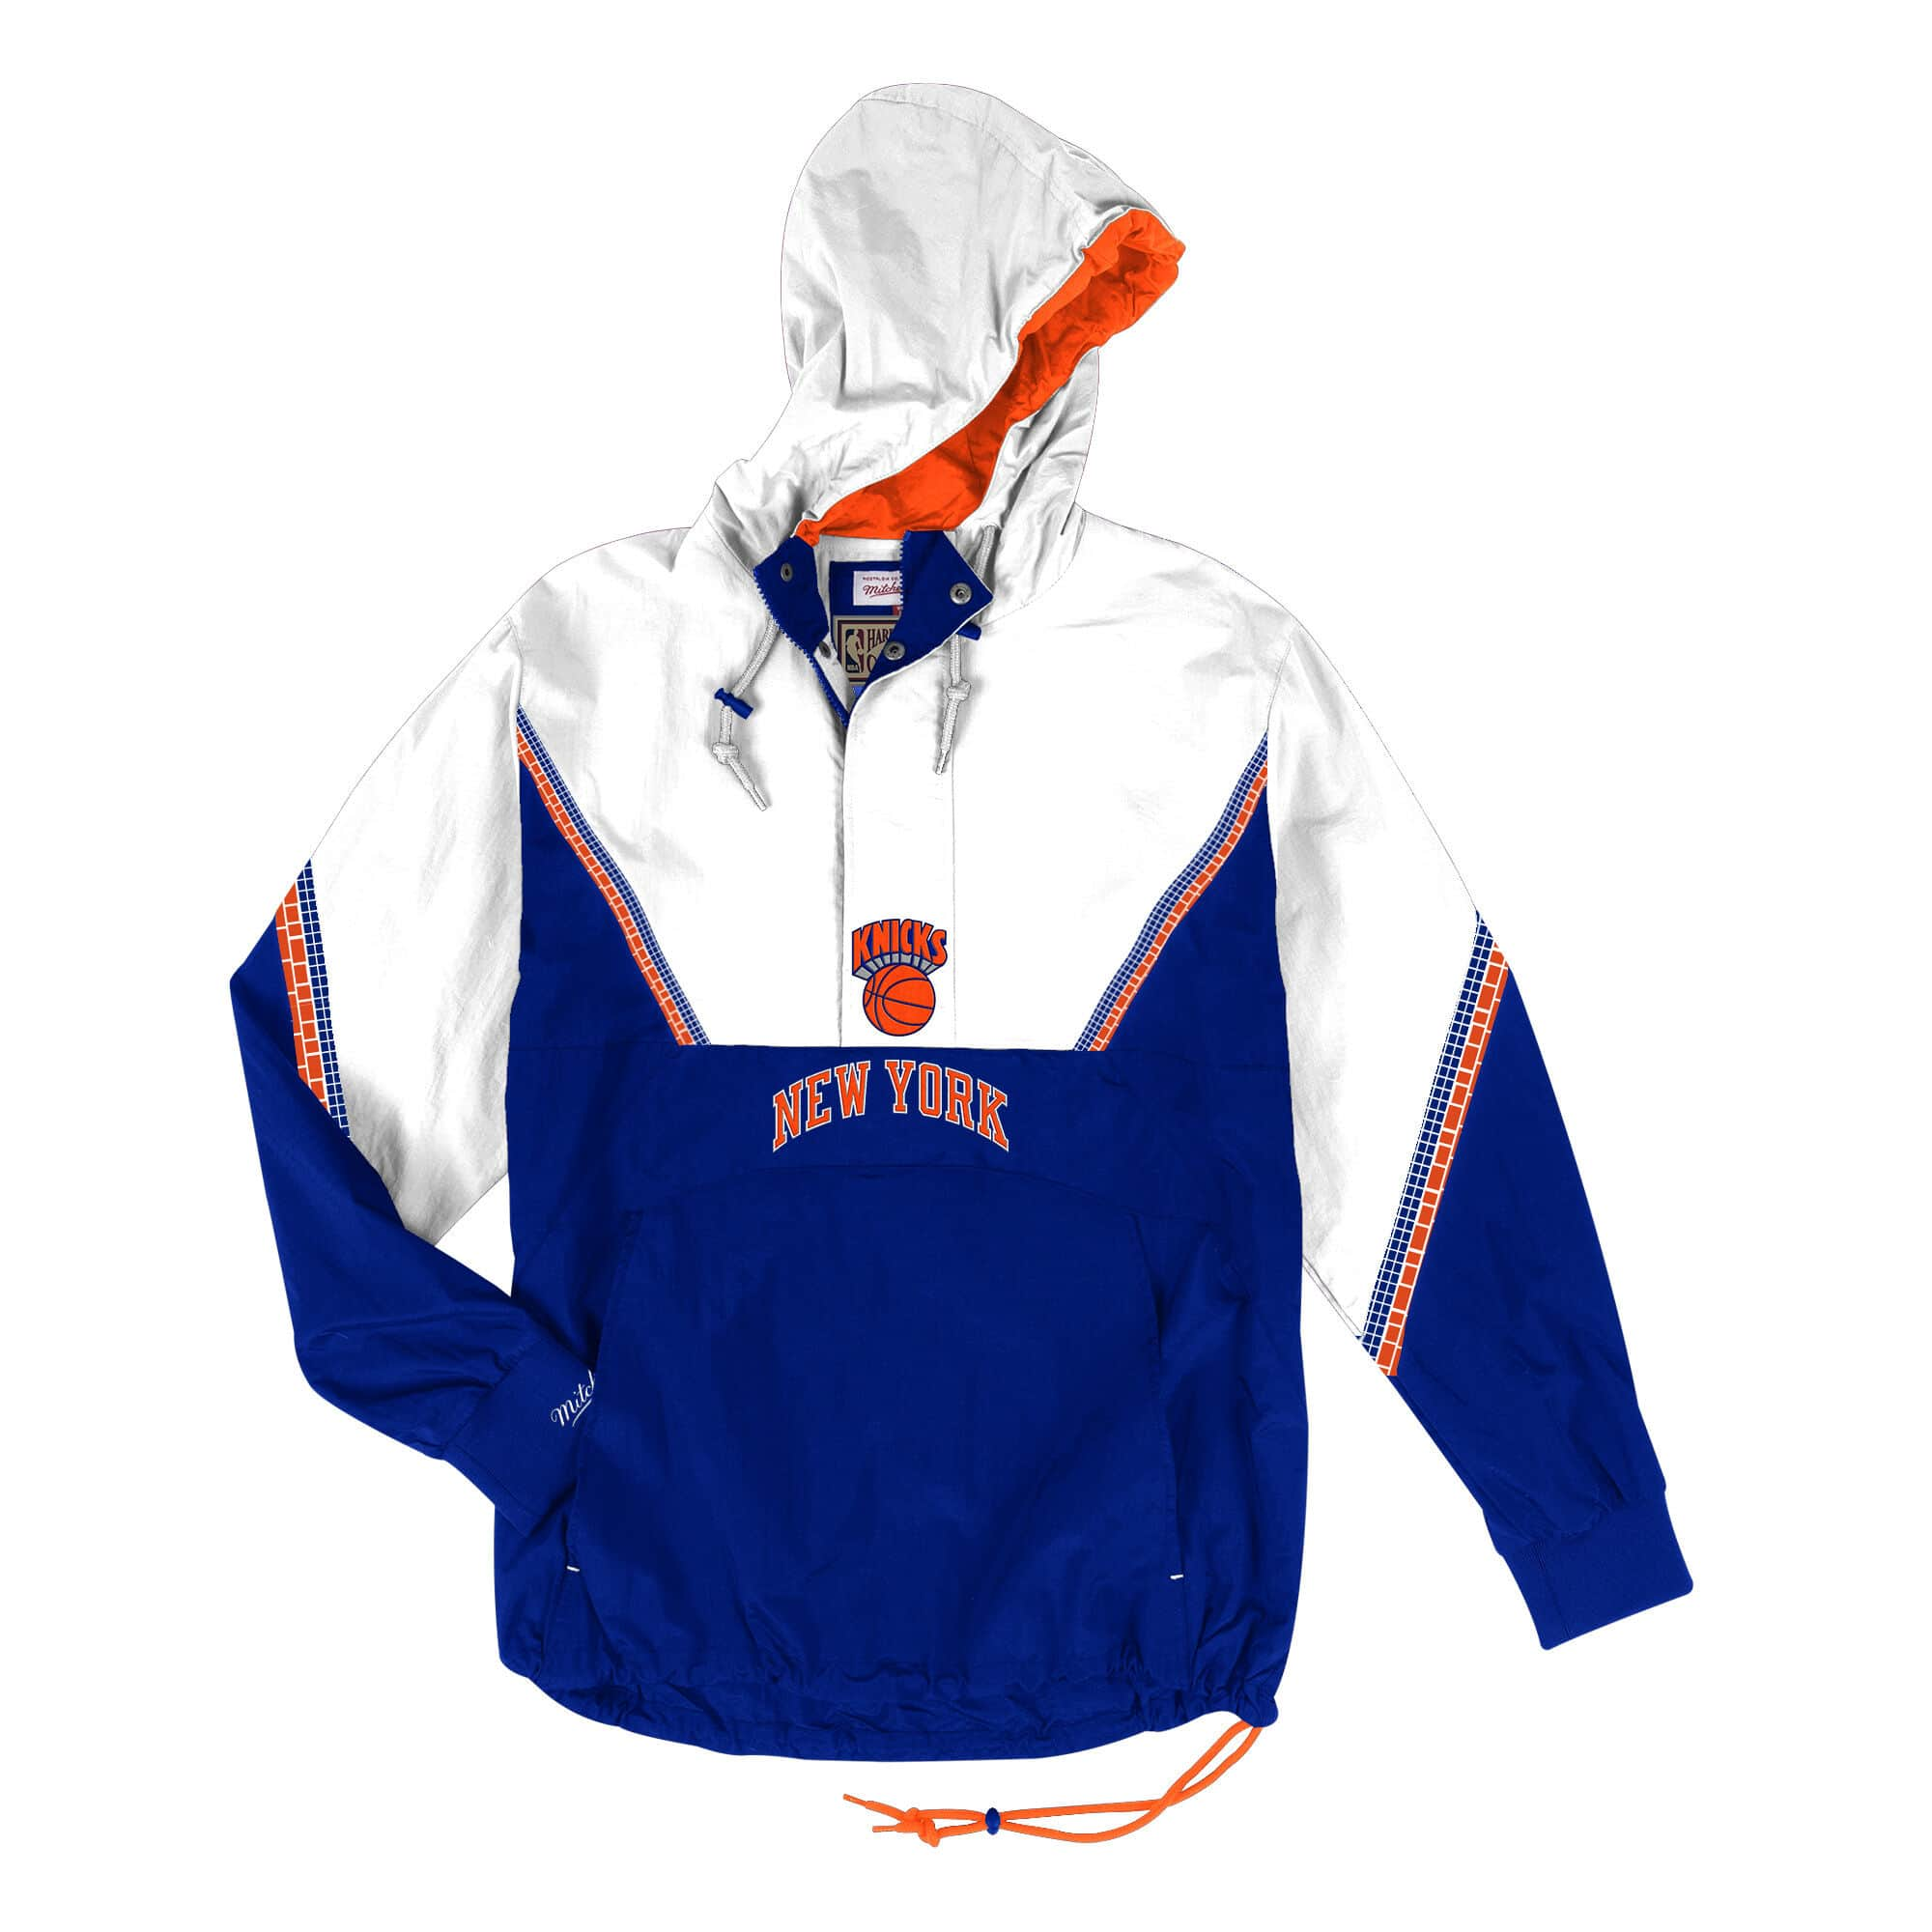 Mitchell and Ness Half Zip Anorak New York Knicks Jacket - Ameri-Camden